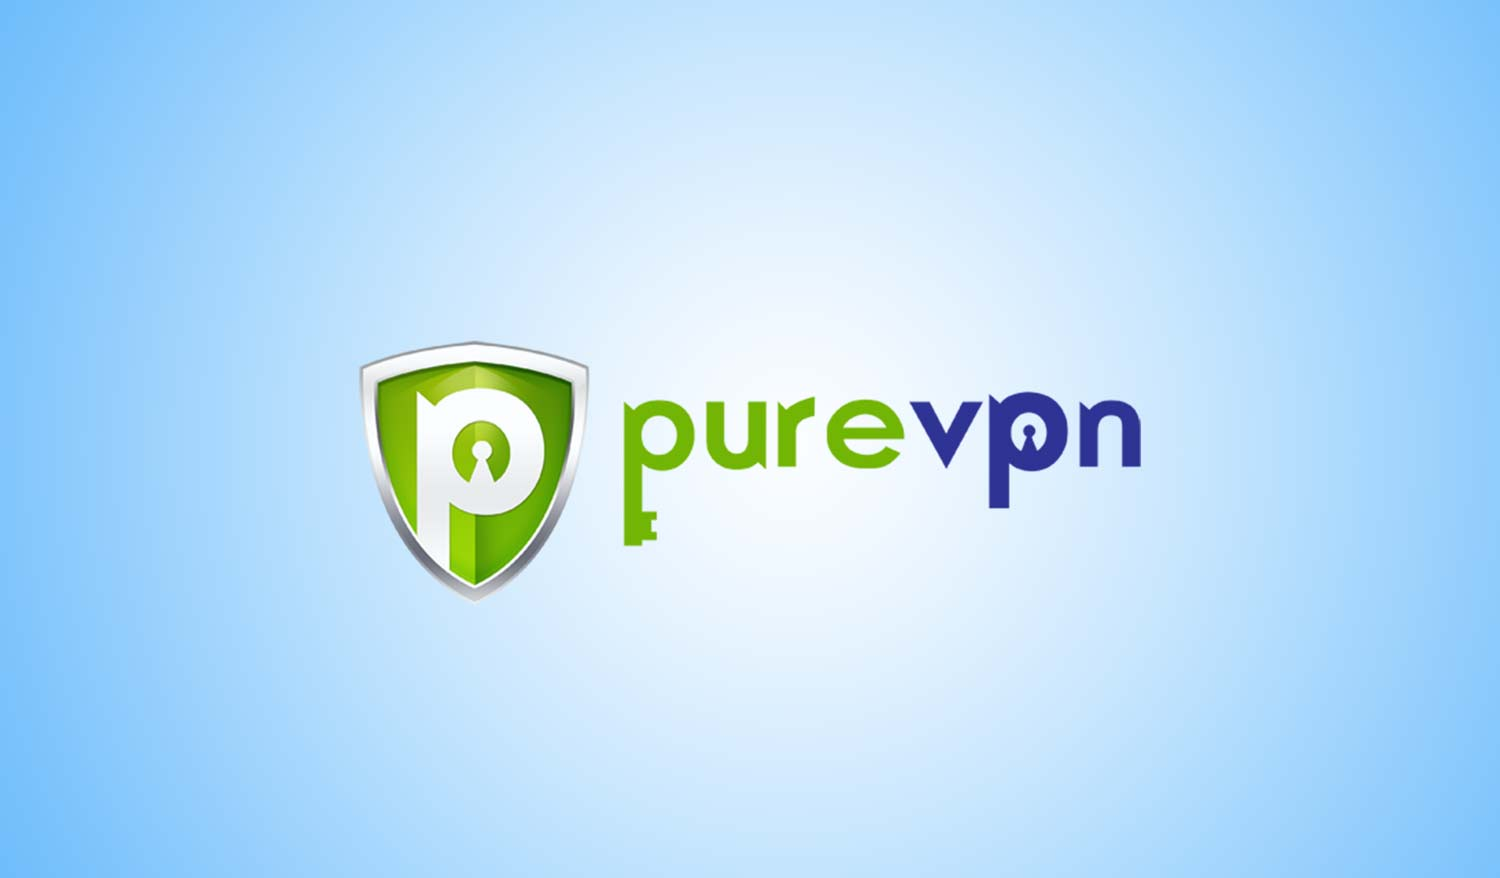 PureVPN 7 Full Crack New Software Free Download For Windows [2020]